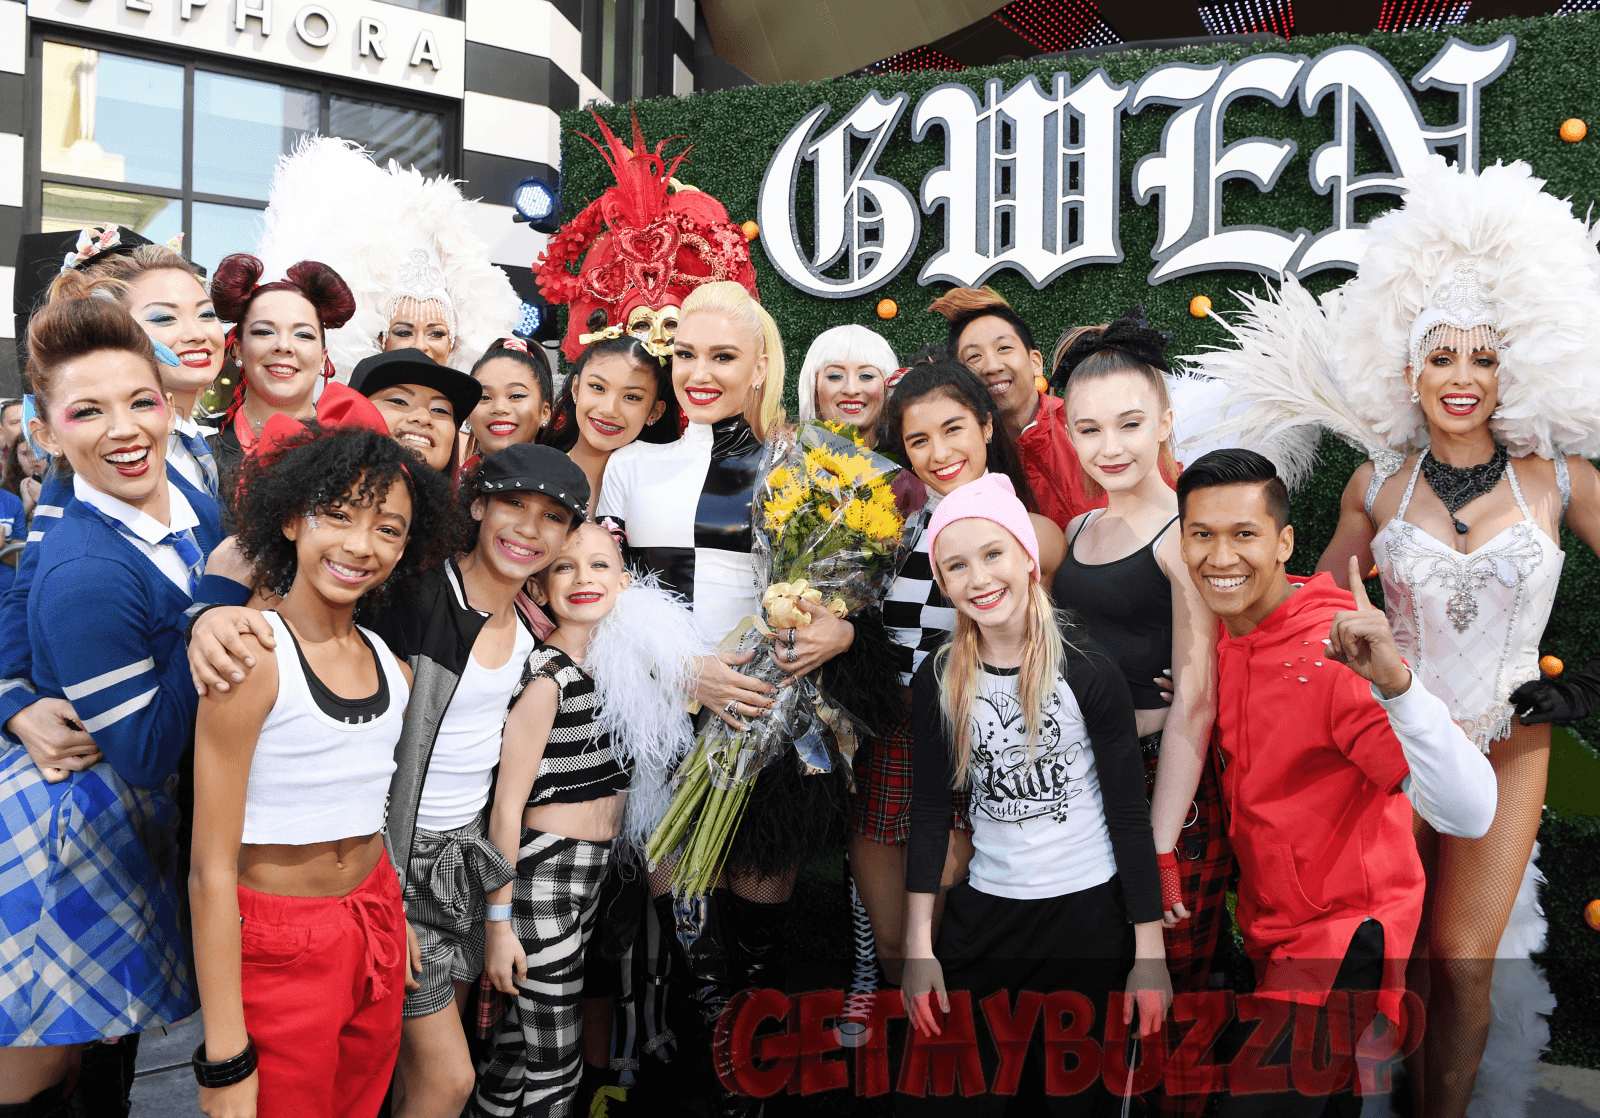 Gwen Stefani: Just A Girl About to Take Over Las Vegas [Interview]